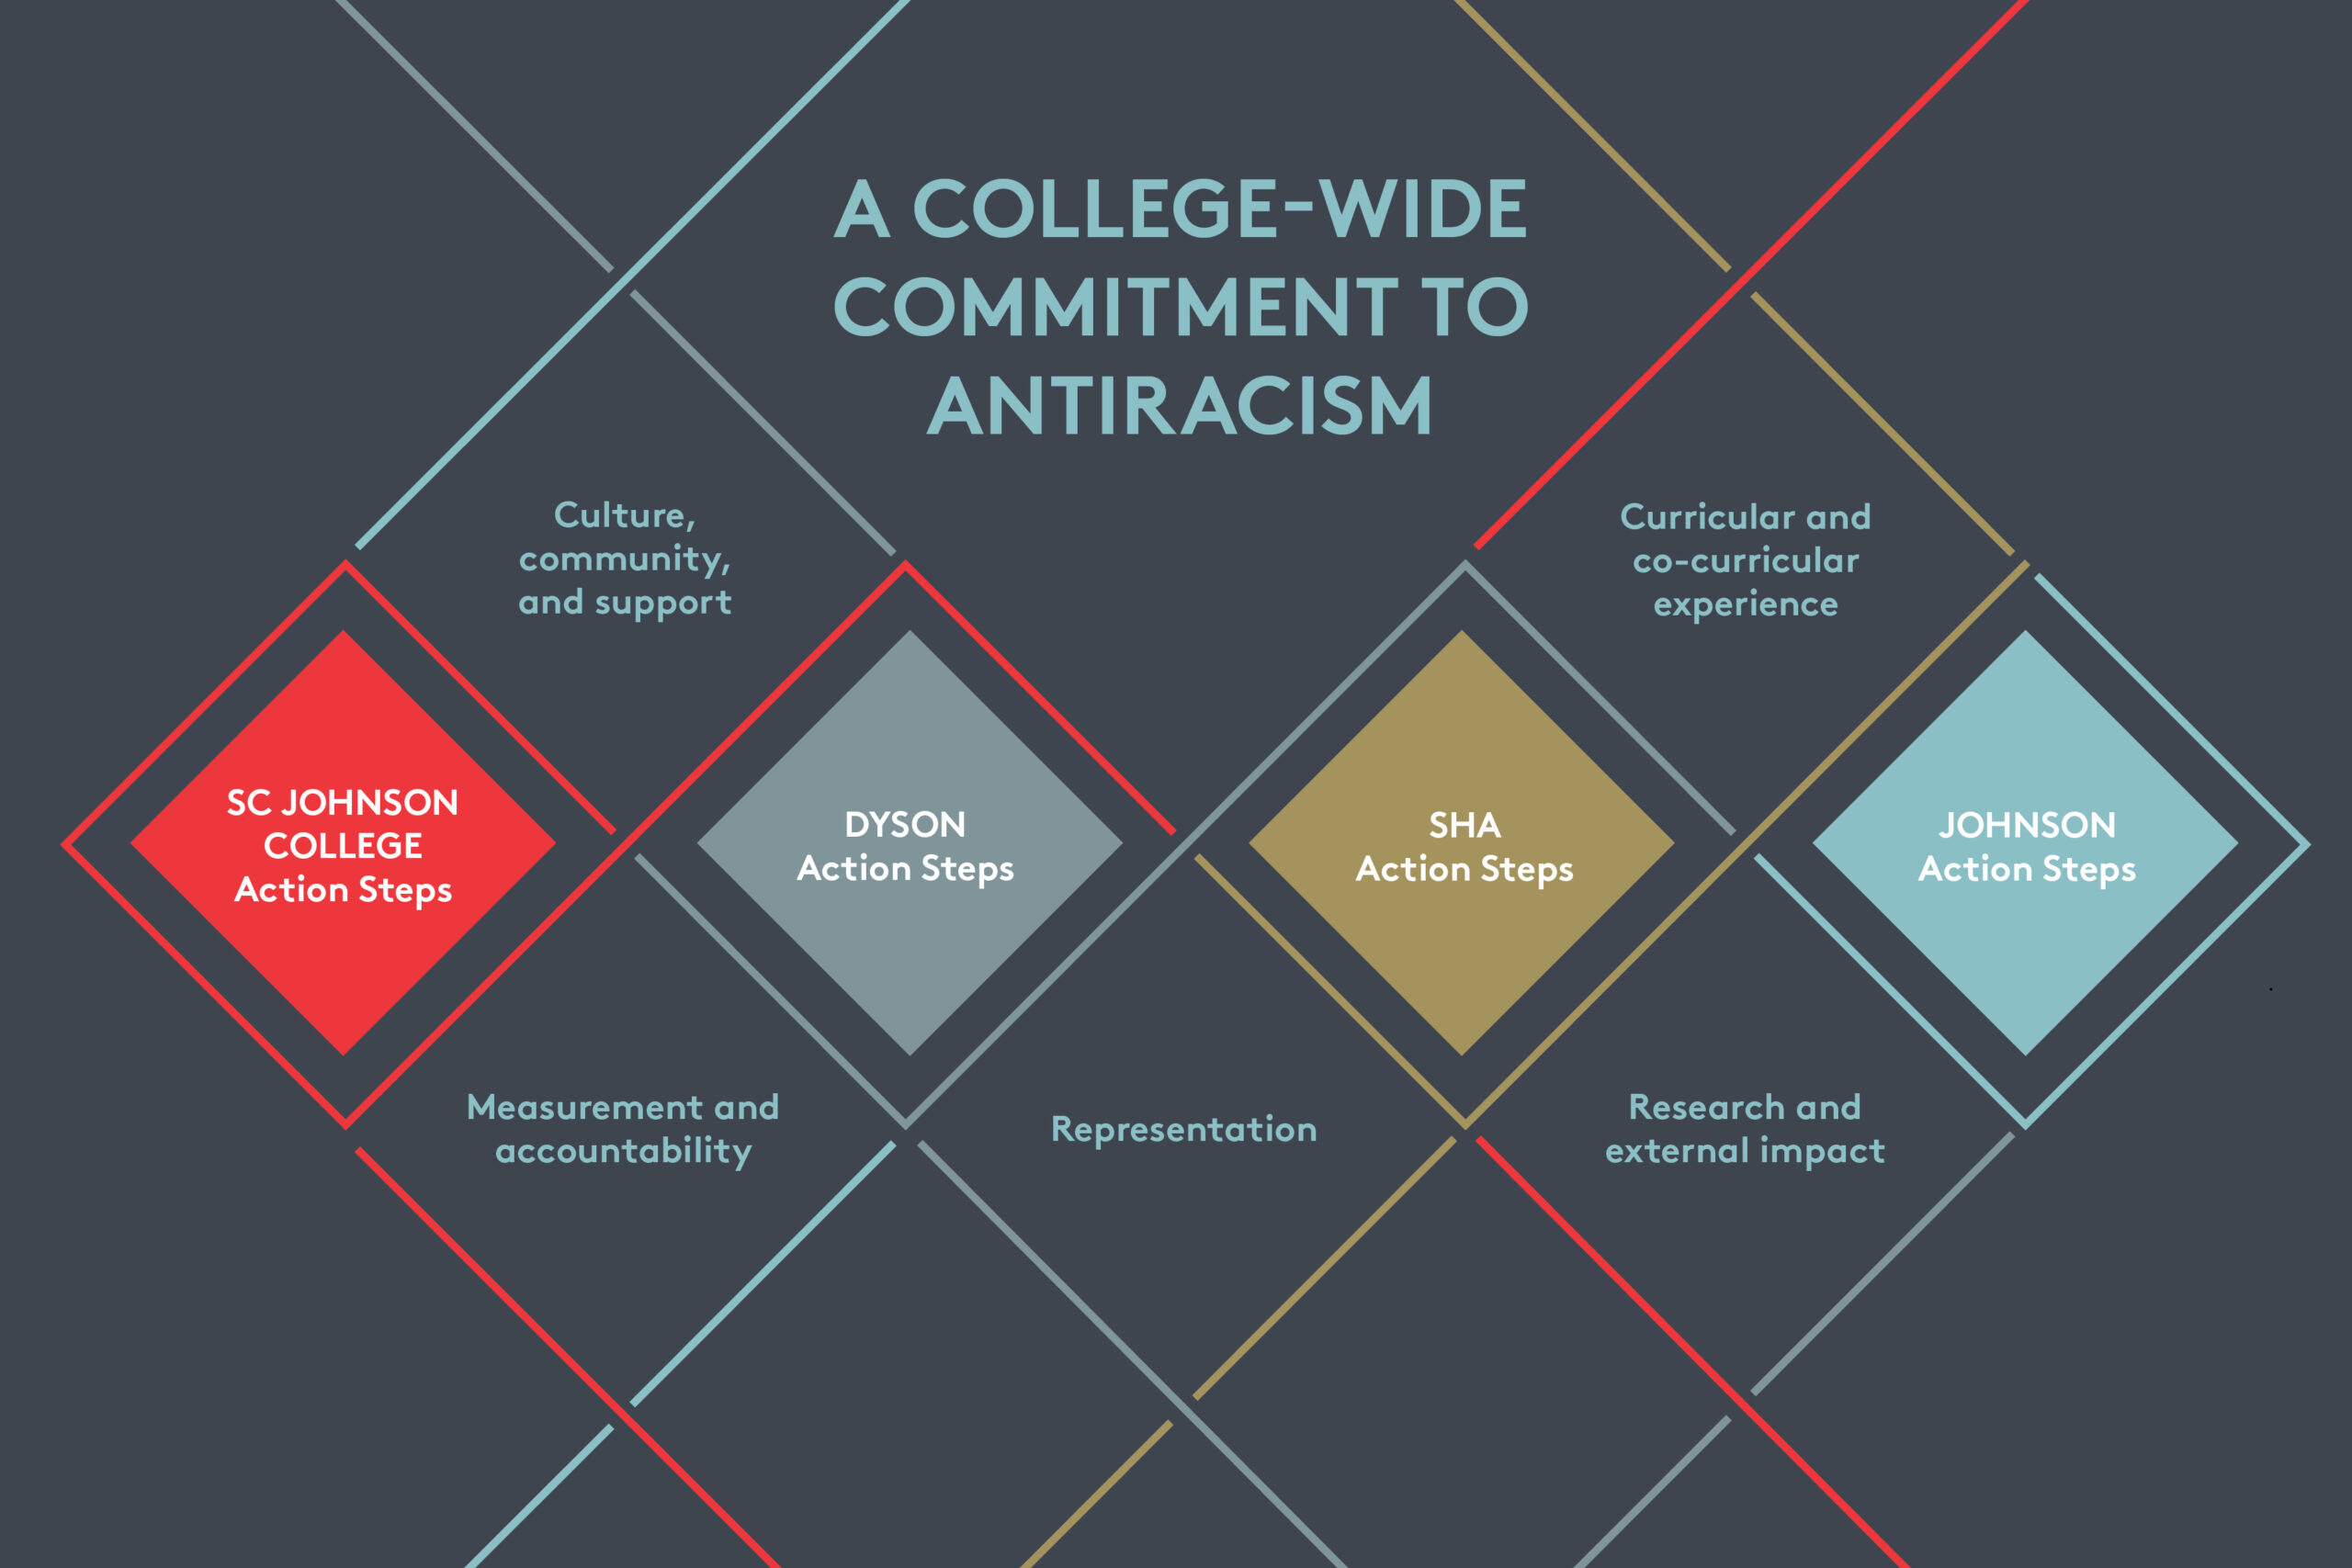 College-Wide Commitment to Antiracism infographic